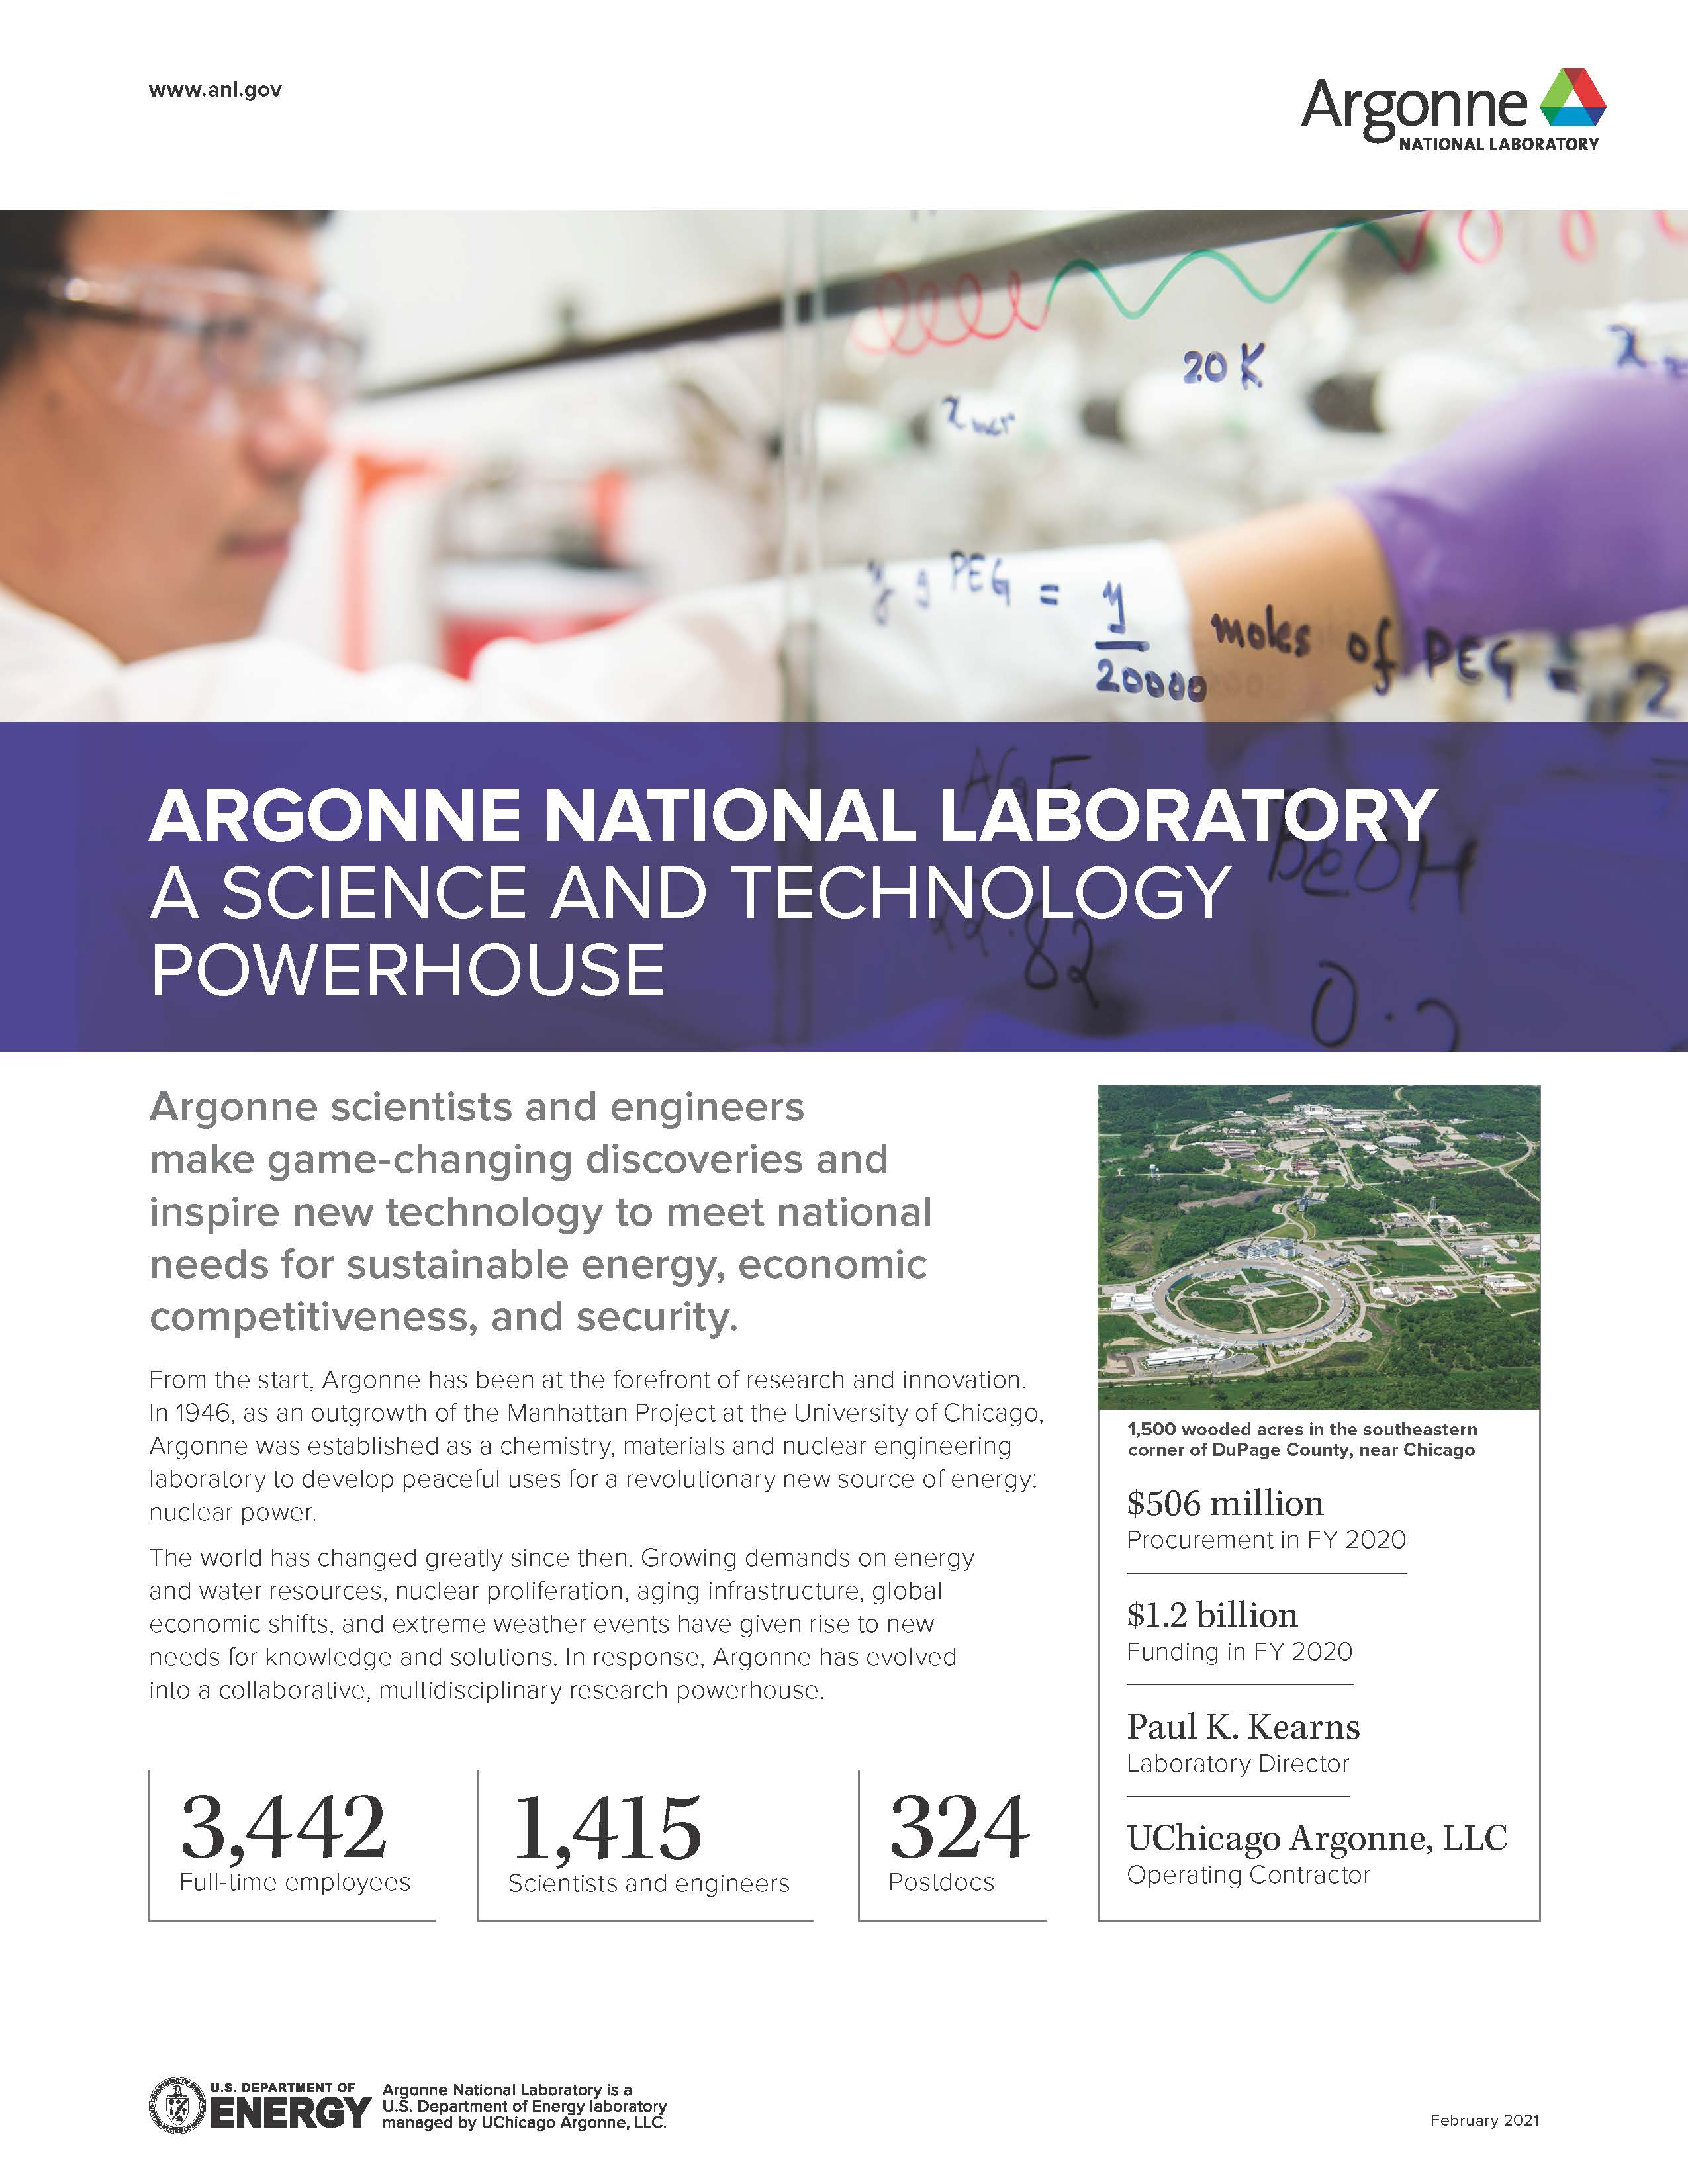 Factsheet about Argonne with photo of scientist working in a laboratory